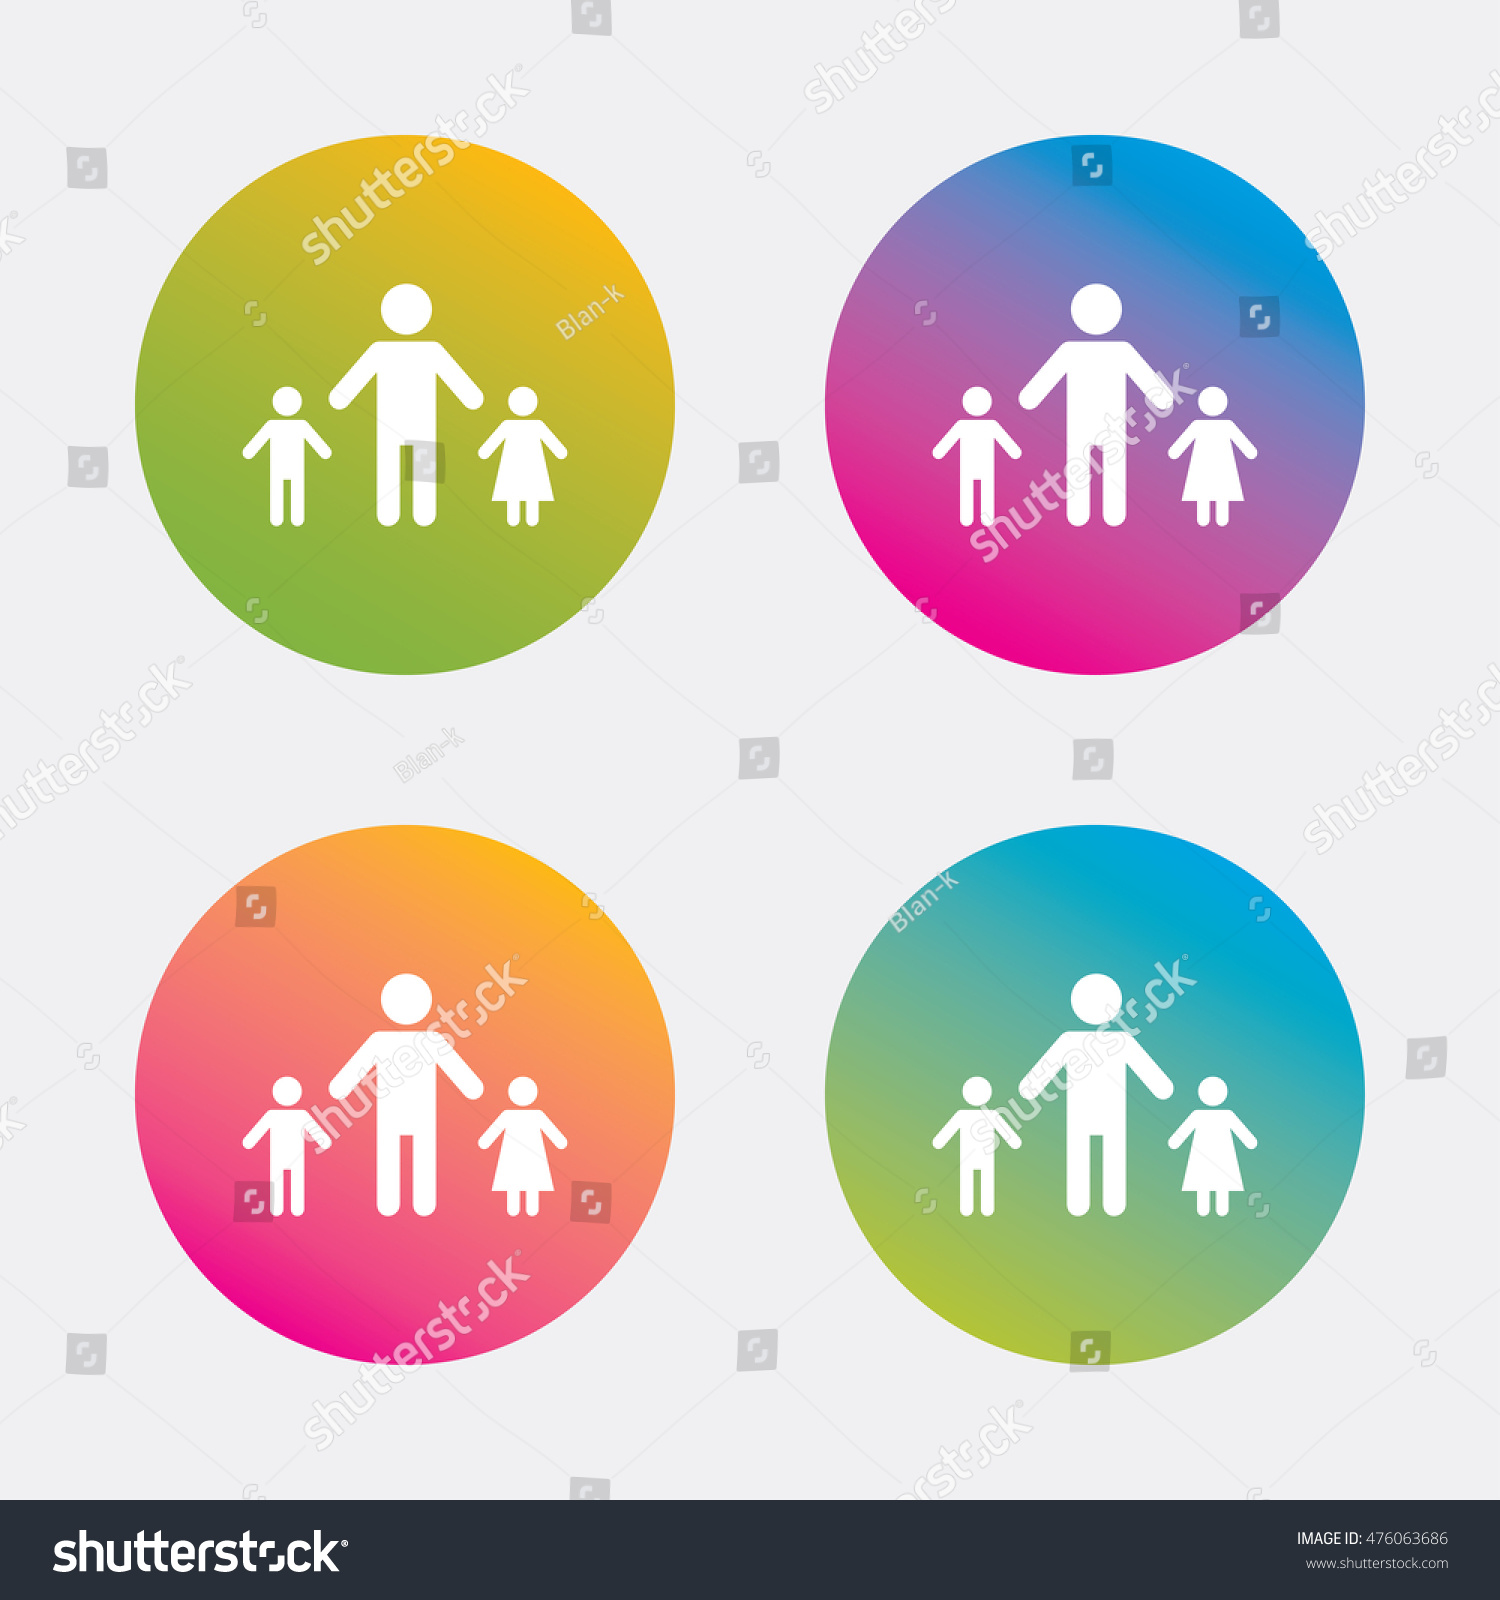 Oneparent family two children sign icon stock vector 476063686 one parent family with two children sign icon father with son and daughter symbol biocorpaavc